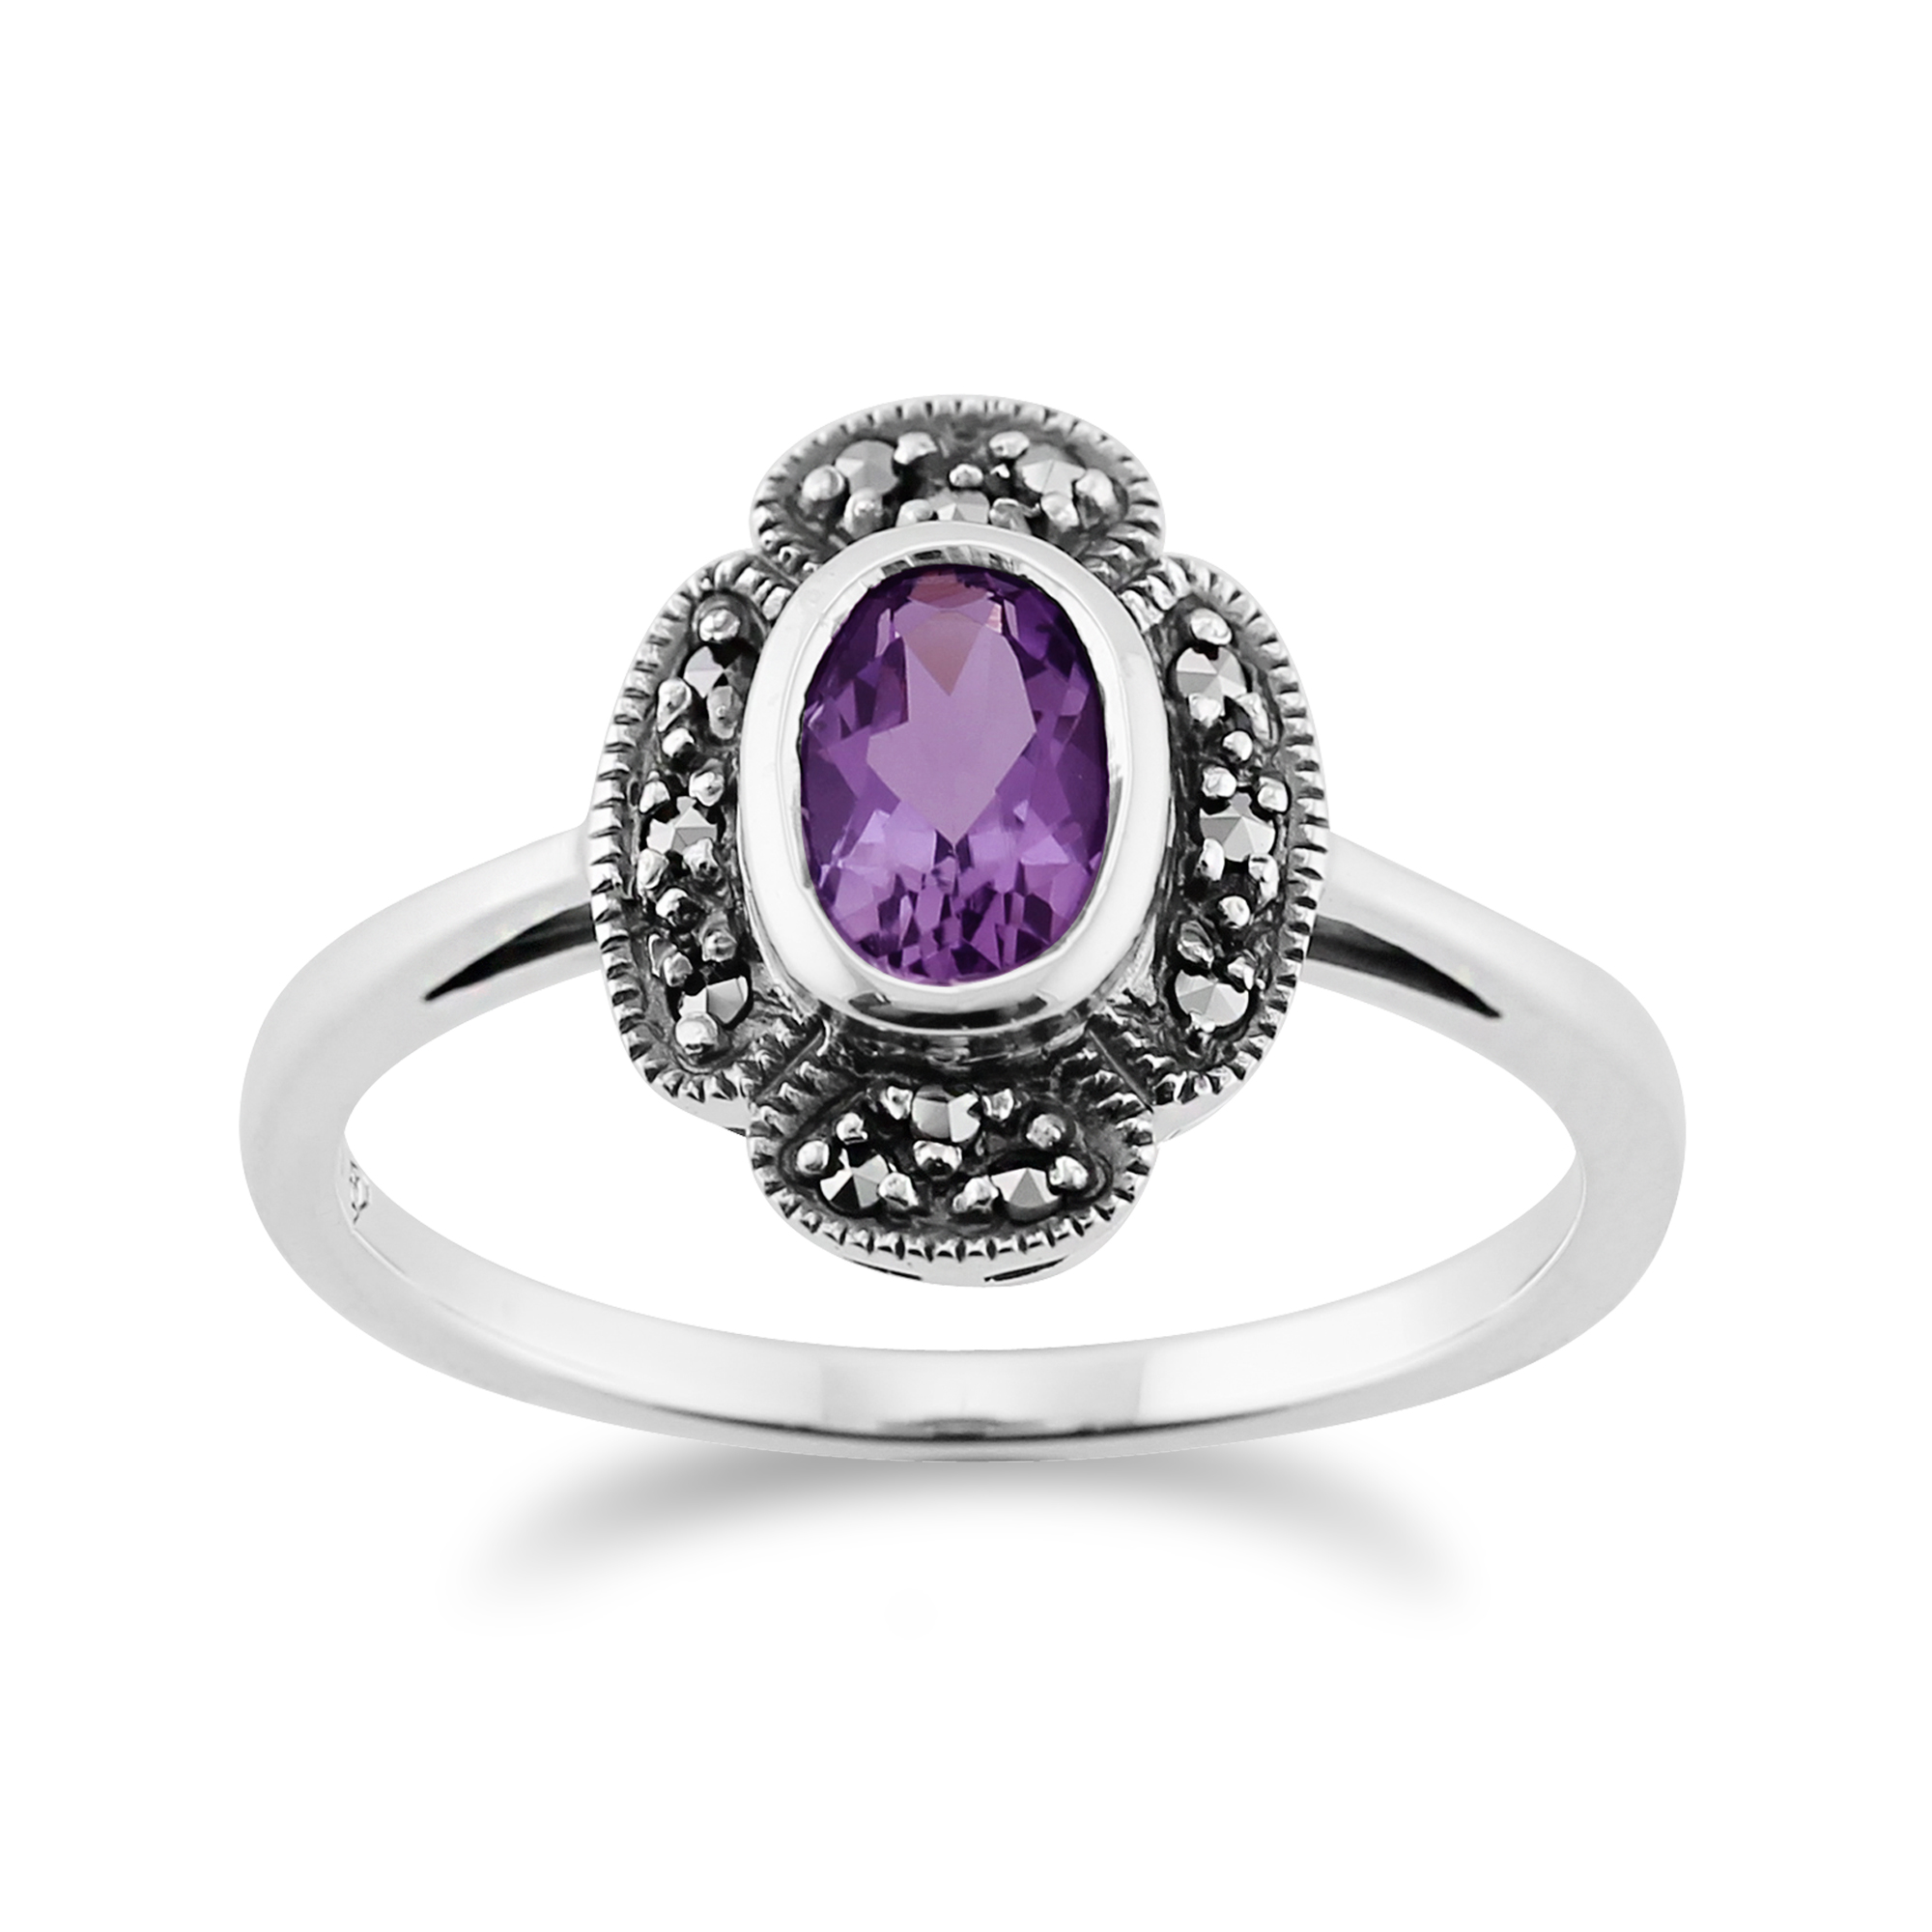 Gemondo Sterling Silver 0.35ct Amethyst & 9pt Marcasite Art Deco Style Ring